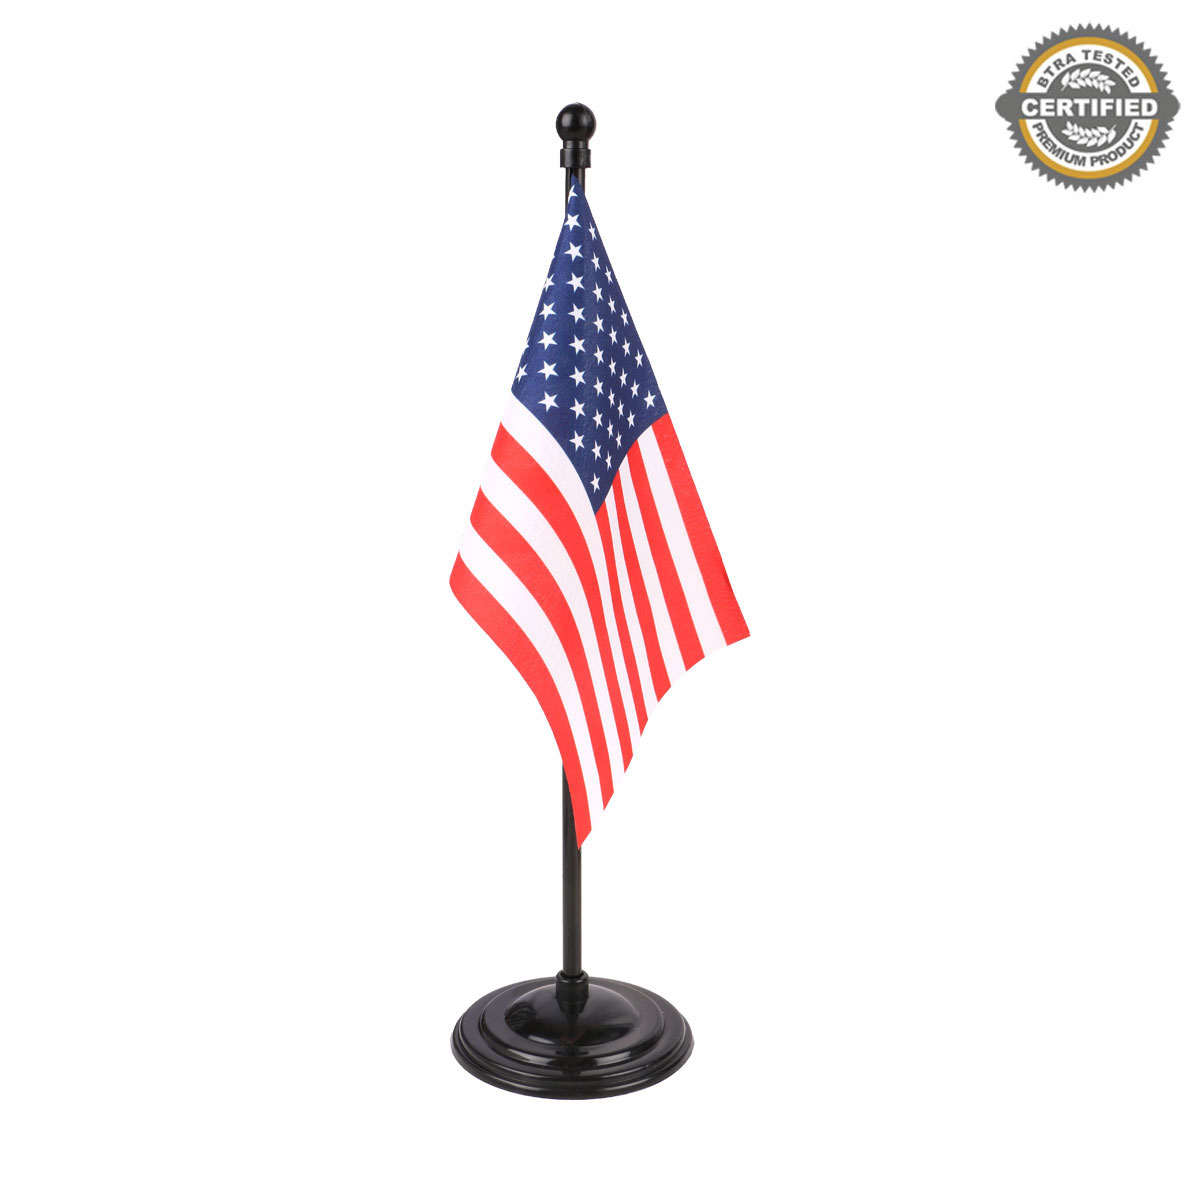 """USA Miniature Table Flag of size 4"""" x 6"""" in 100% Polyester With A Black Plastic Round Base"""